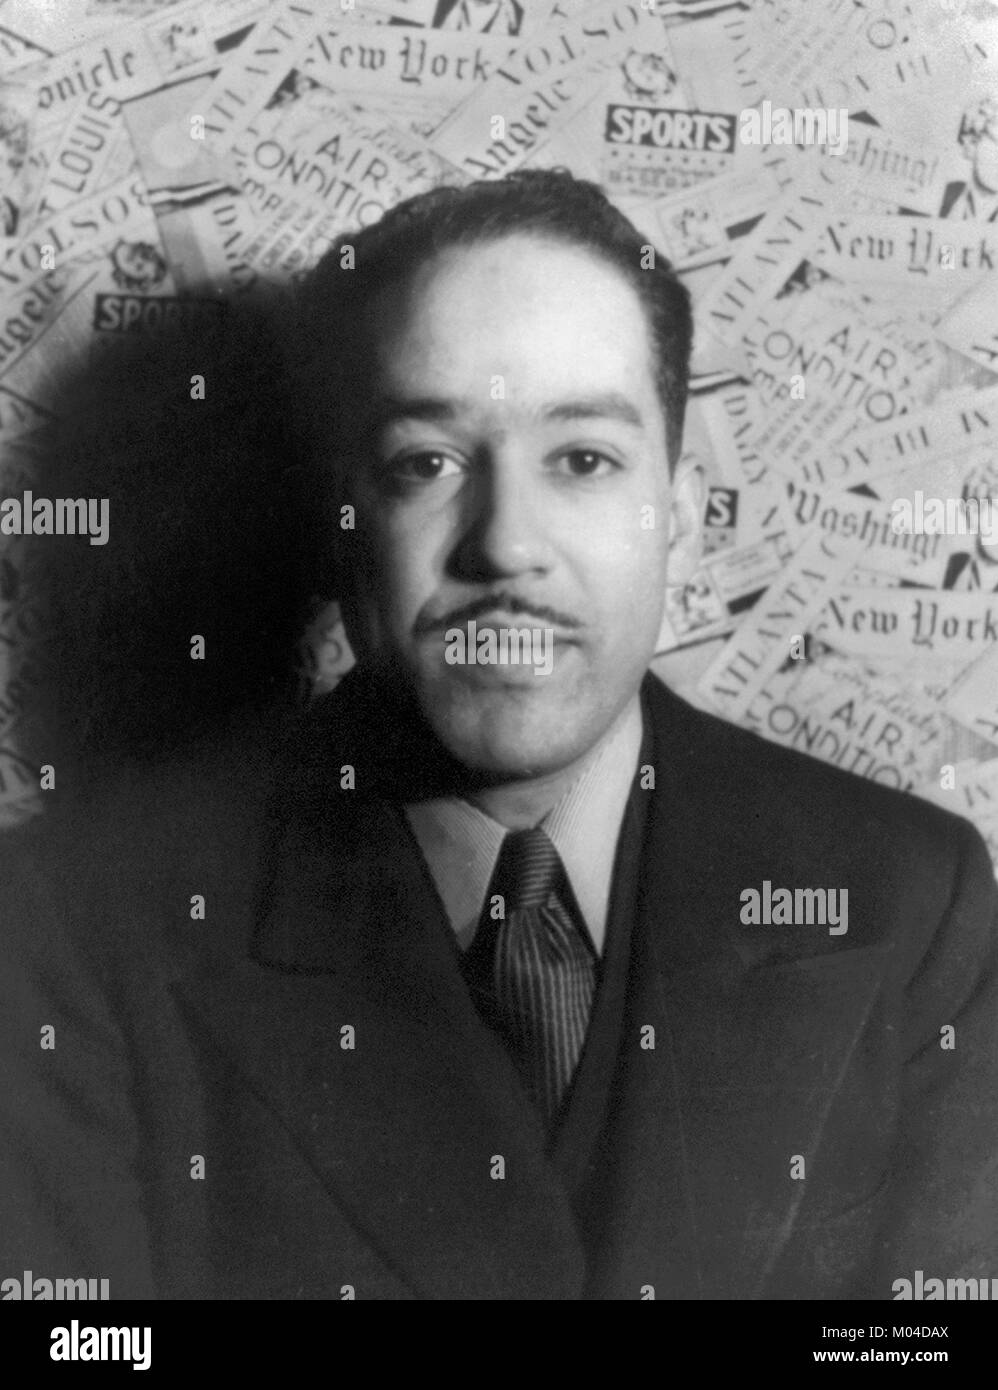 Langston Hughes. The American poet, playwright and acivist James Mercer Langston Hughes (1902-1967), photography - Stock Image